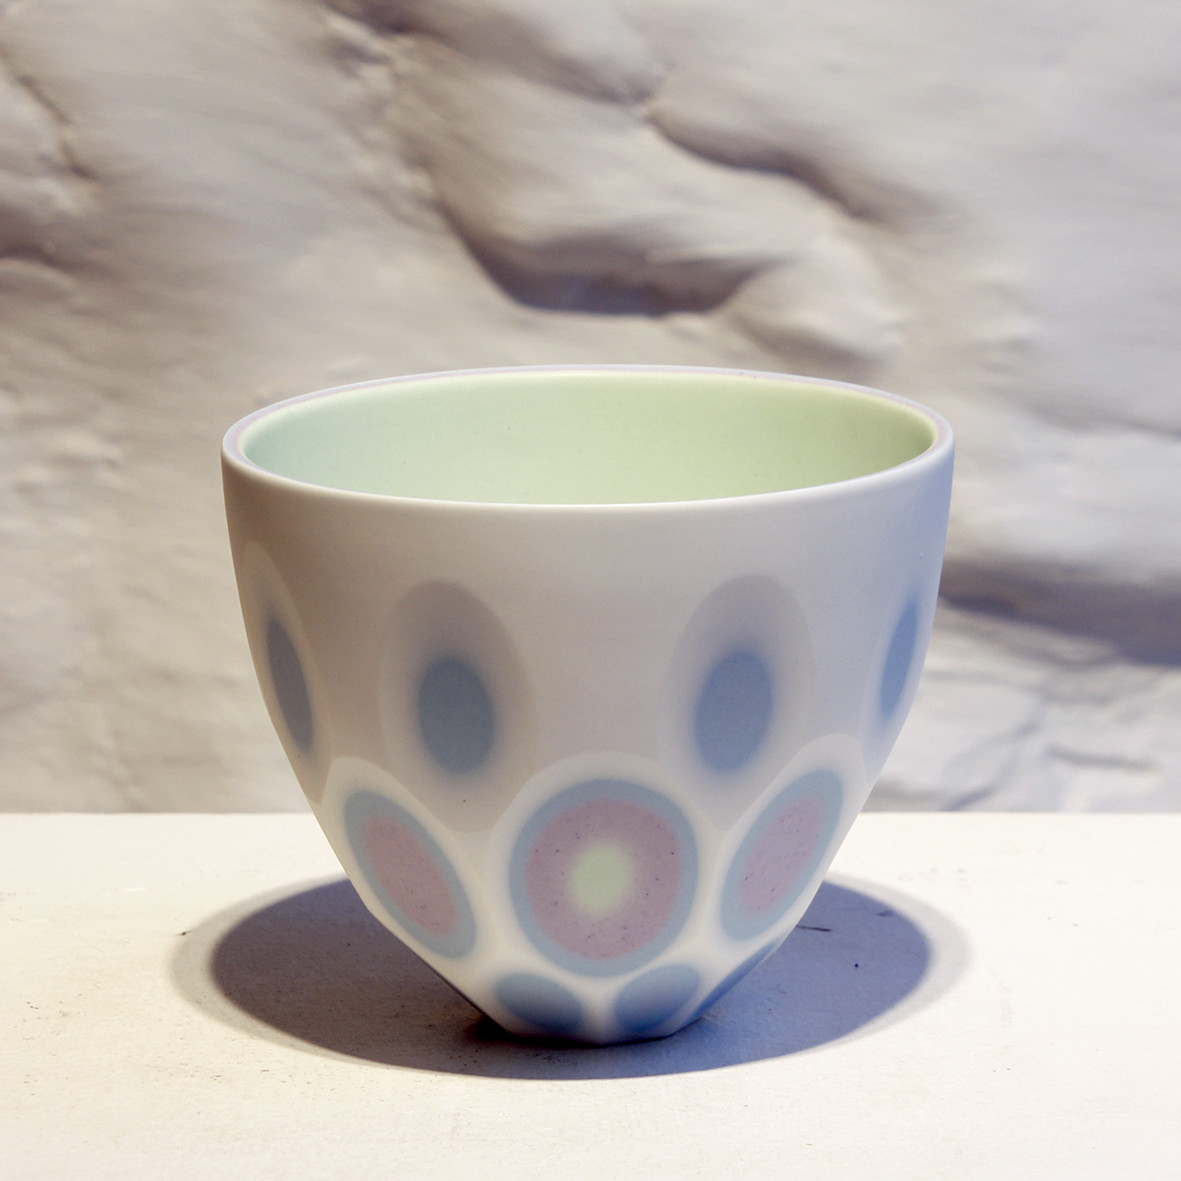 "<span class=""link fancybox-details-link""><a href=""/artists/60-sasha-wardell/works/6022-sasha-wardell-four-layers-space-bowl-2018/"">View Detail Page</a></span><div class=""artist""><strong>Sasha Wardell</strong></div> <div class=""title""><em>Four Layers Space Bowl</em>, 2018</div> <div class=""medium"">porcelain</div><div class=""copyright_line"">Copyright The Artist</div>"